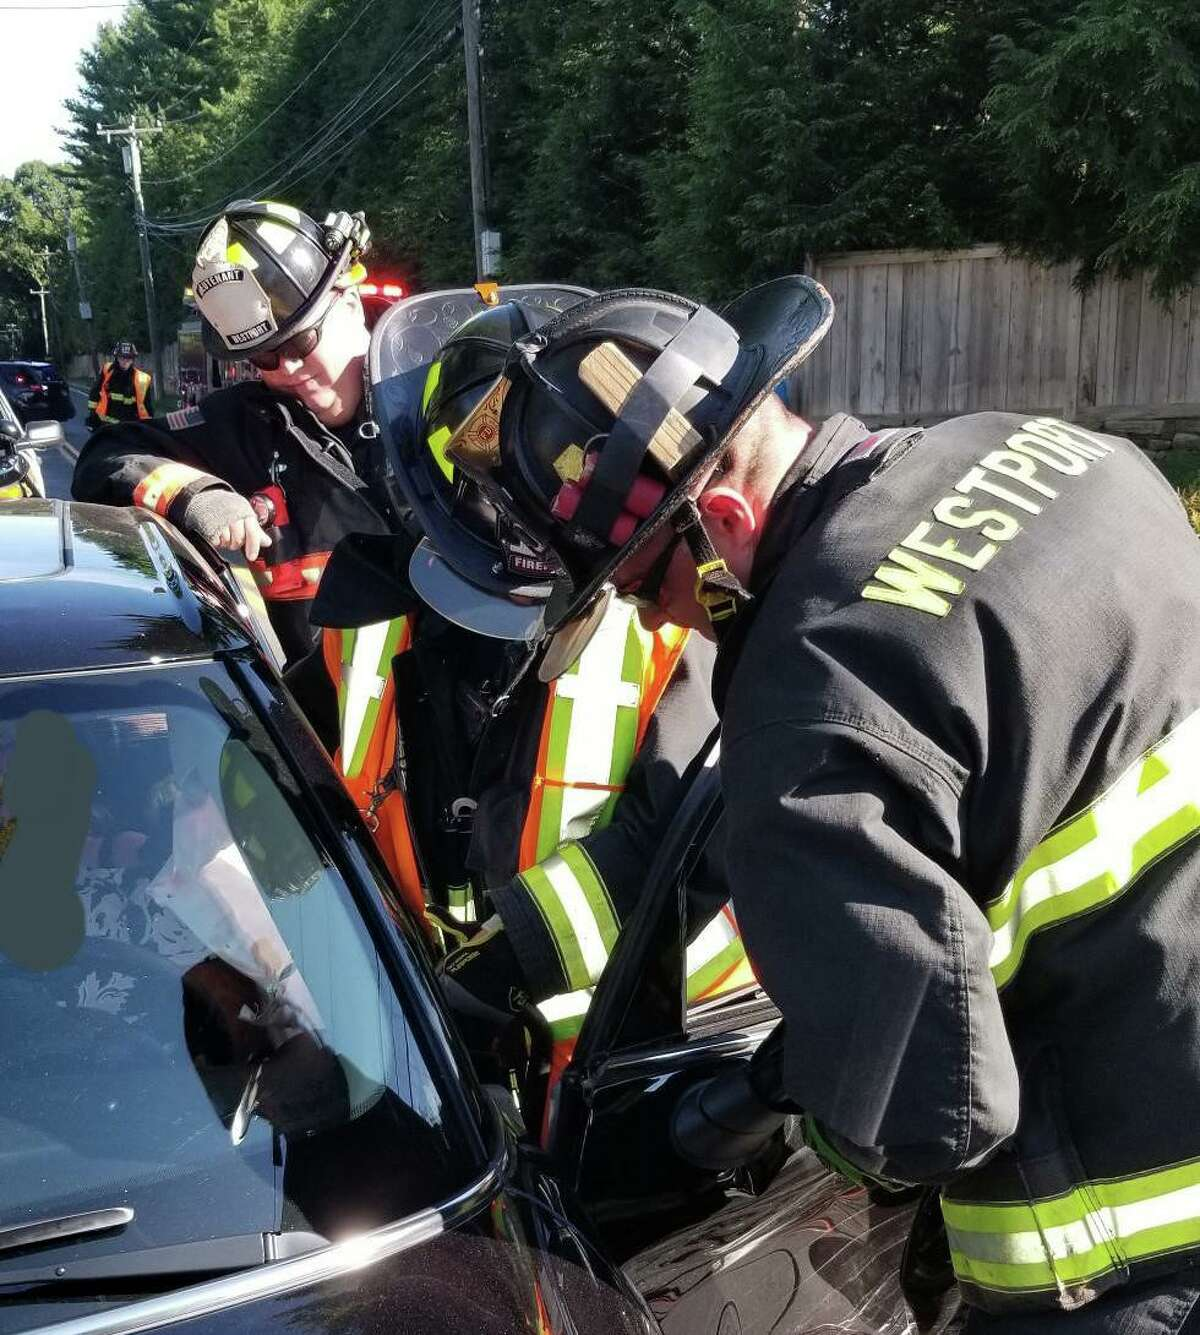 Two people were injured in a two-vehicle accident on Cross Highway on Monday, July 15, 2019. Assistant Fire Chief Jeff Gootman said the accident happened at 8:20 a.m. at the the intersection of Cross Highway and Bayberry Lane.